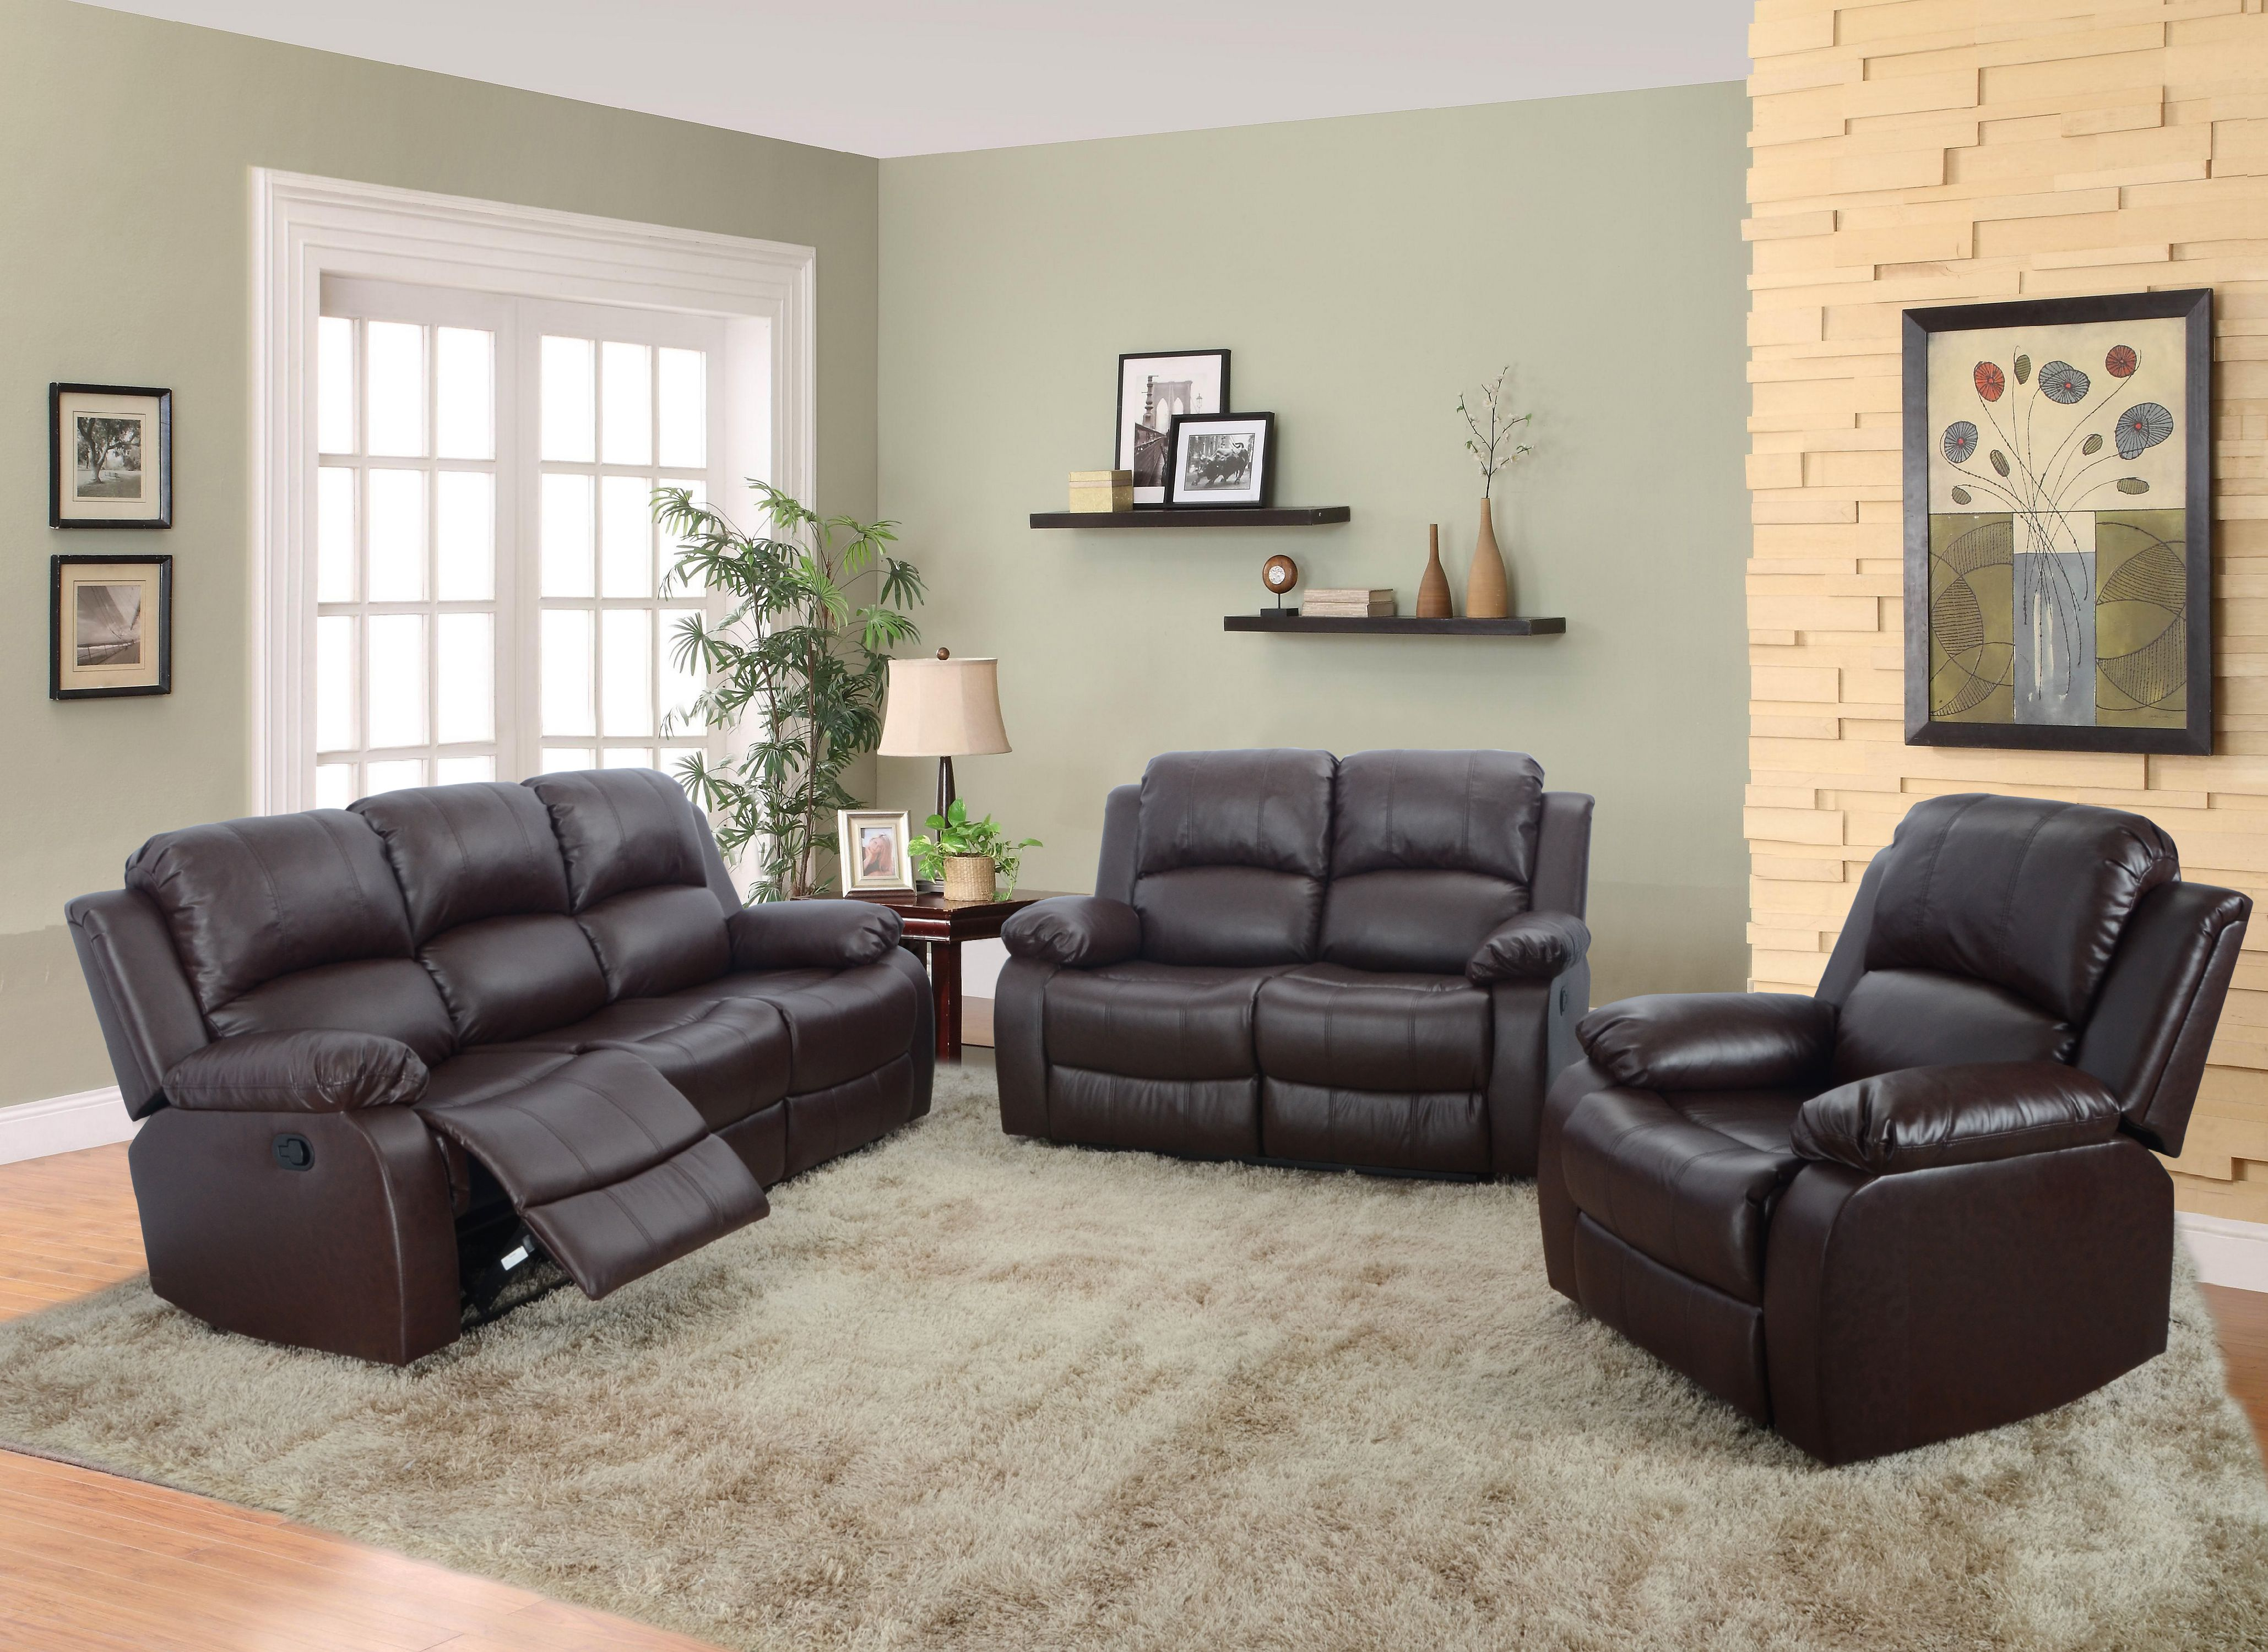 living room sofa and loveseat sets rustic wall paint colors reclining sectional aycp furniture 3pc set chair bonded leather brown color more